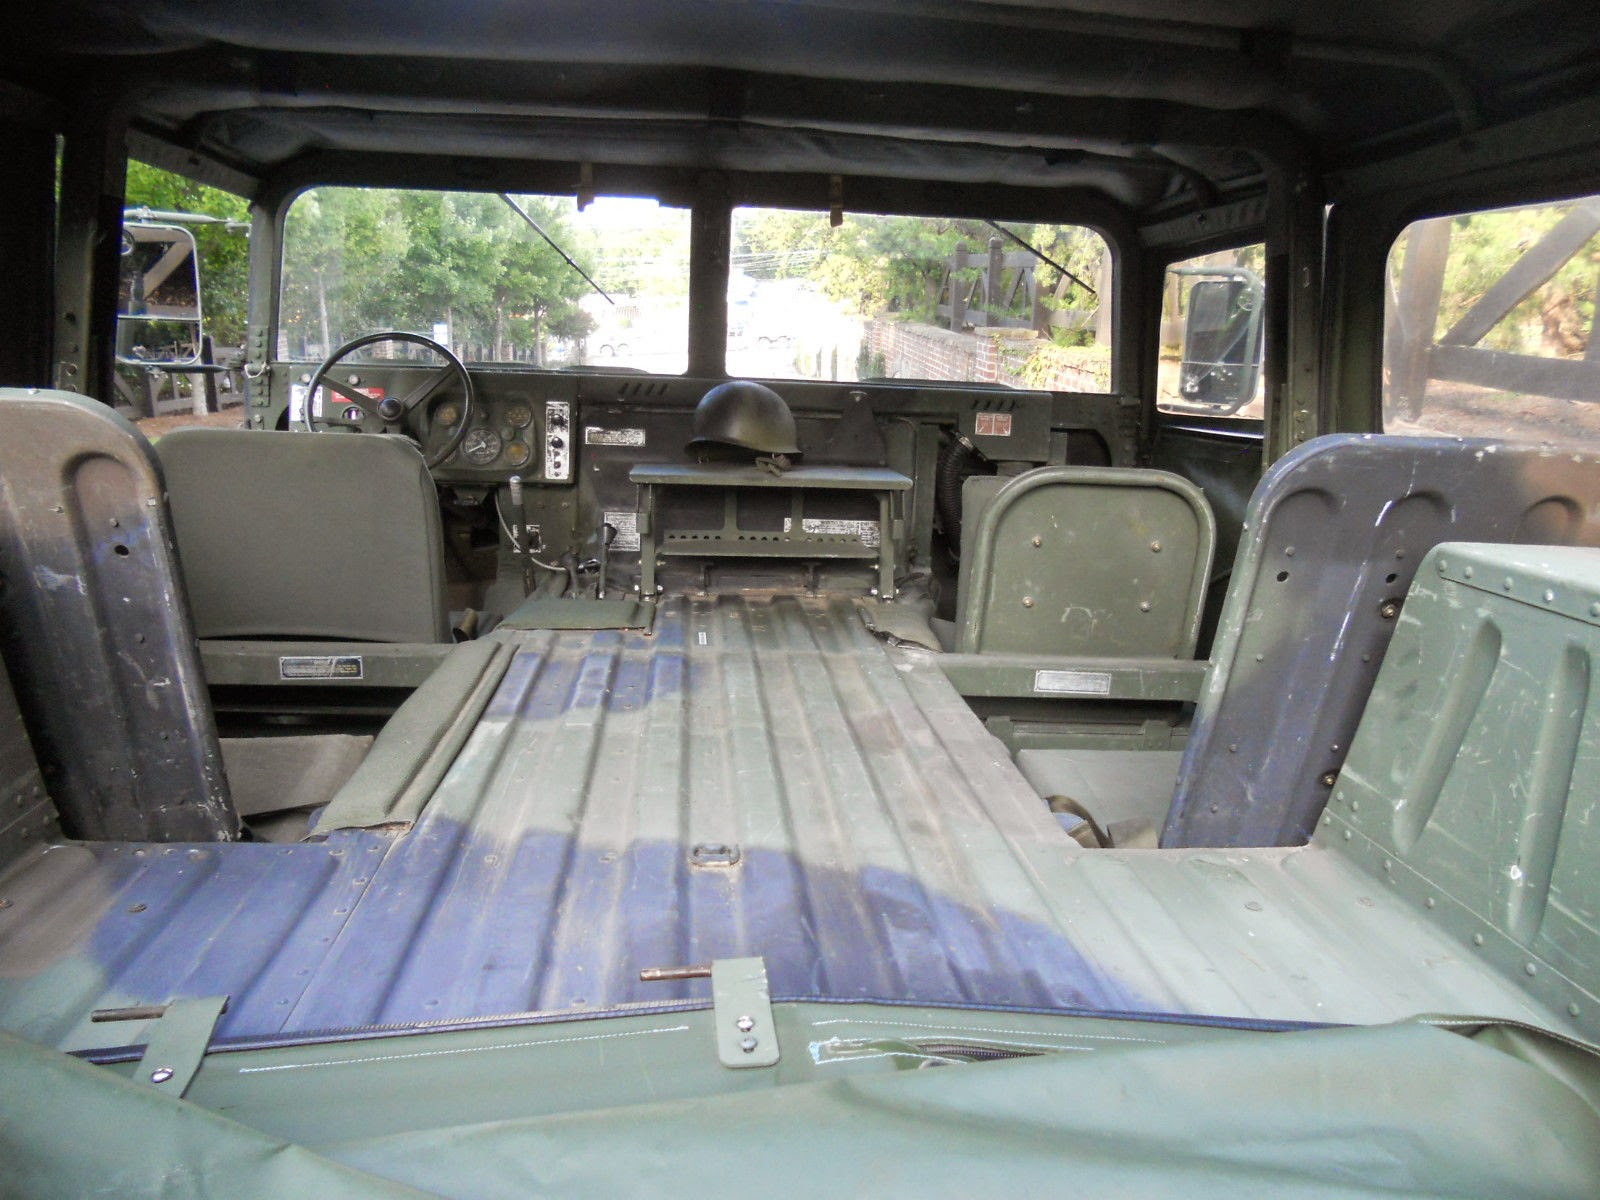 Diesel Truck For Sale >> 1985 M998 Military Humvee for Sale - 4x4 Cars